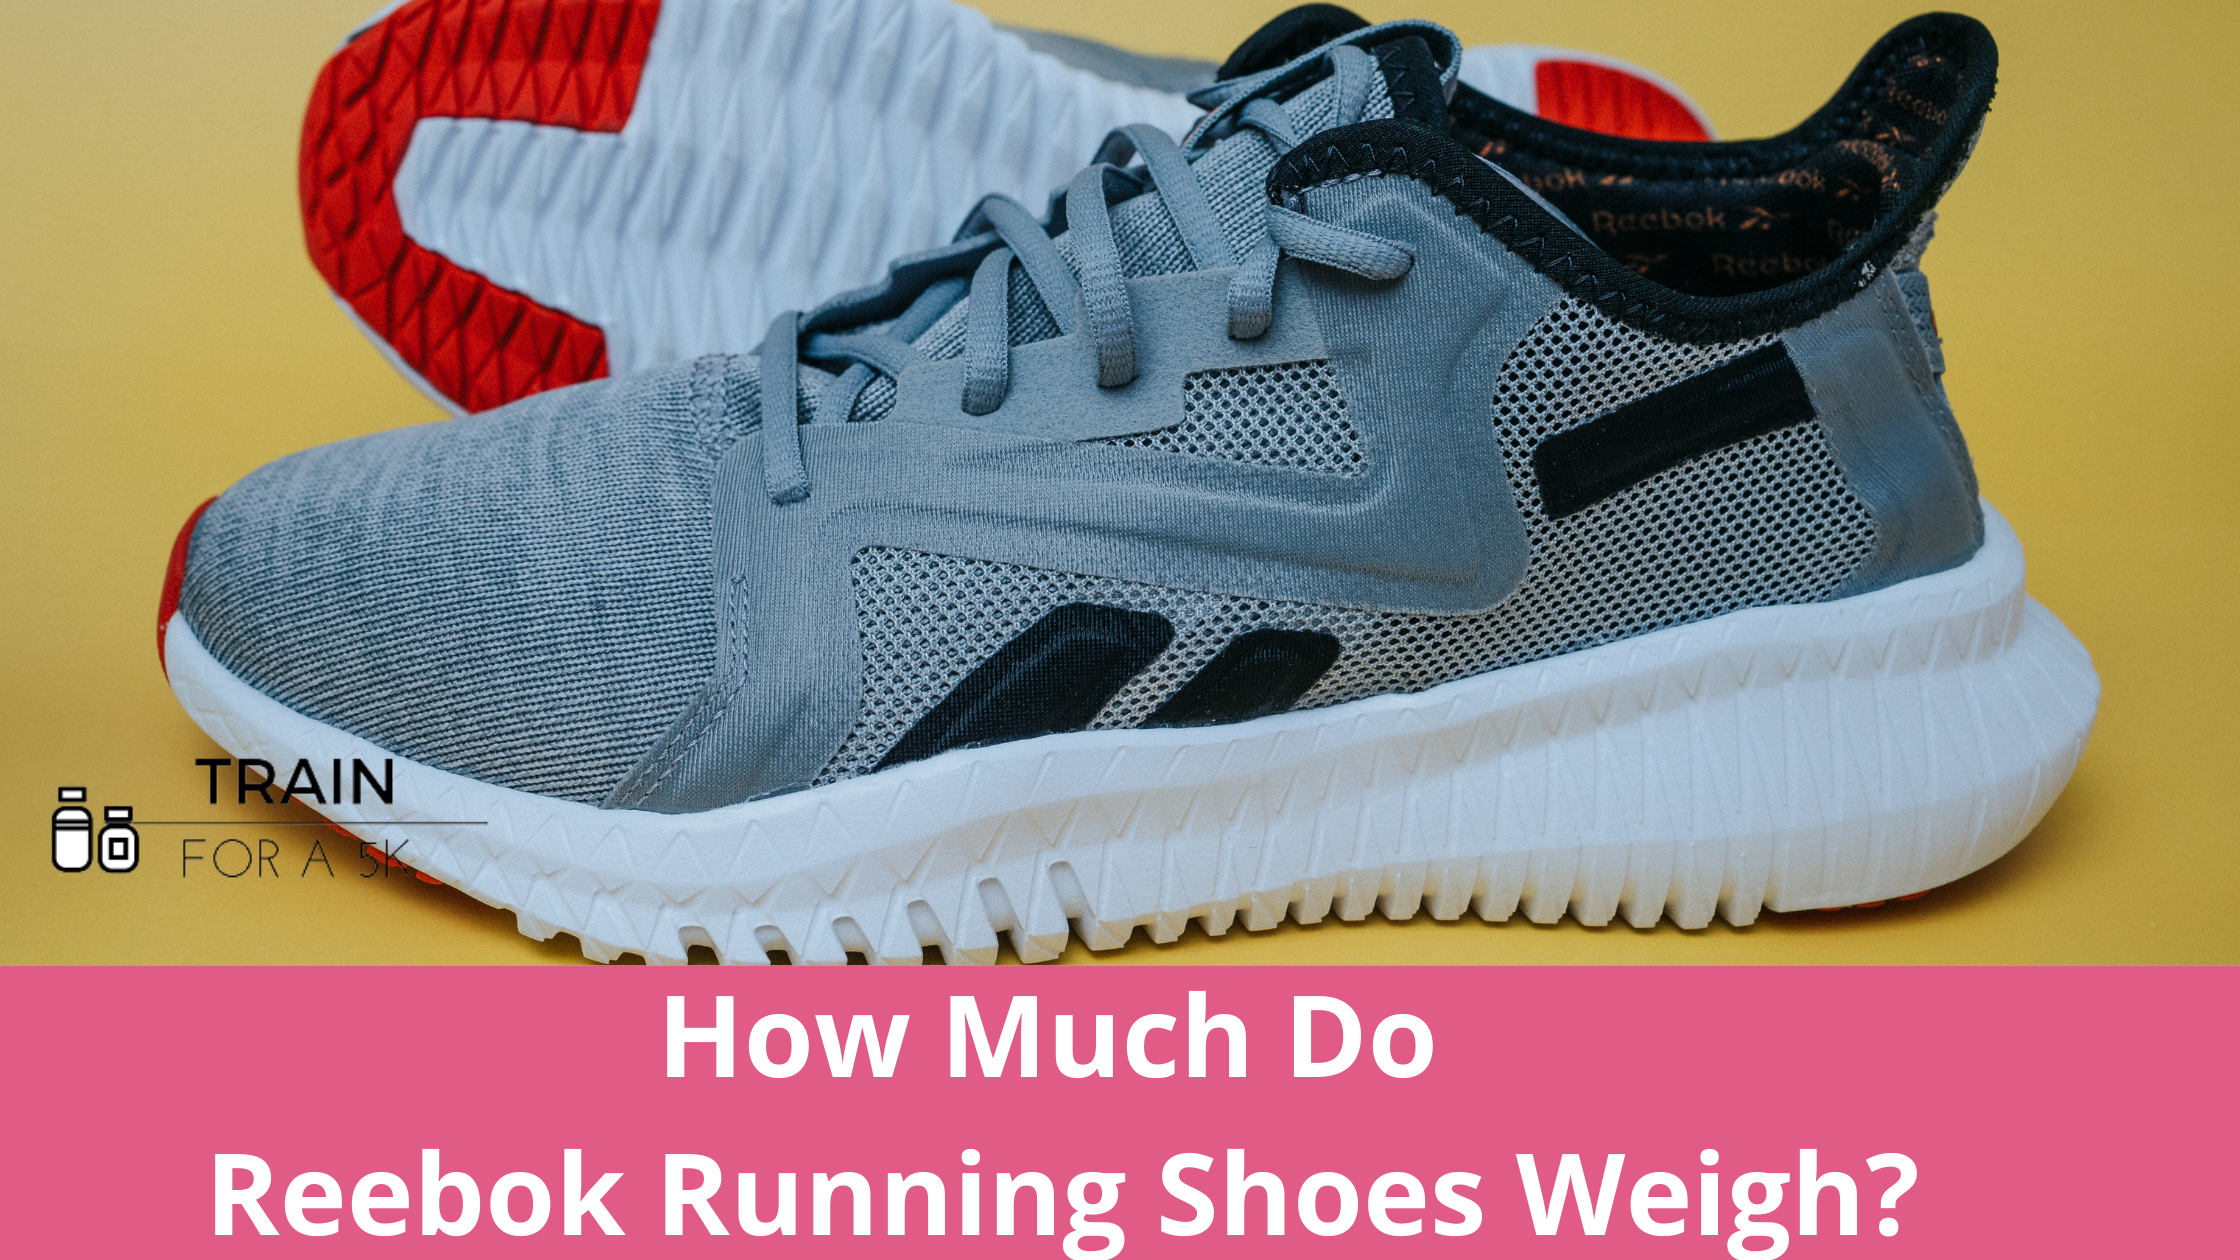 The average weight of a Reebok running shoe is 7.4 ounces in men's and 5.6 ounces in women's. The heaviest Reebok running shoe is the Forever Floatride Energy and the lightest is the Floatride Run Fast Pro.